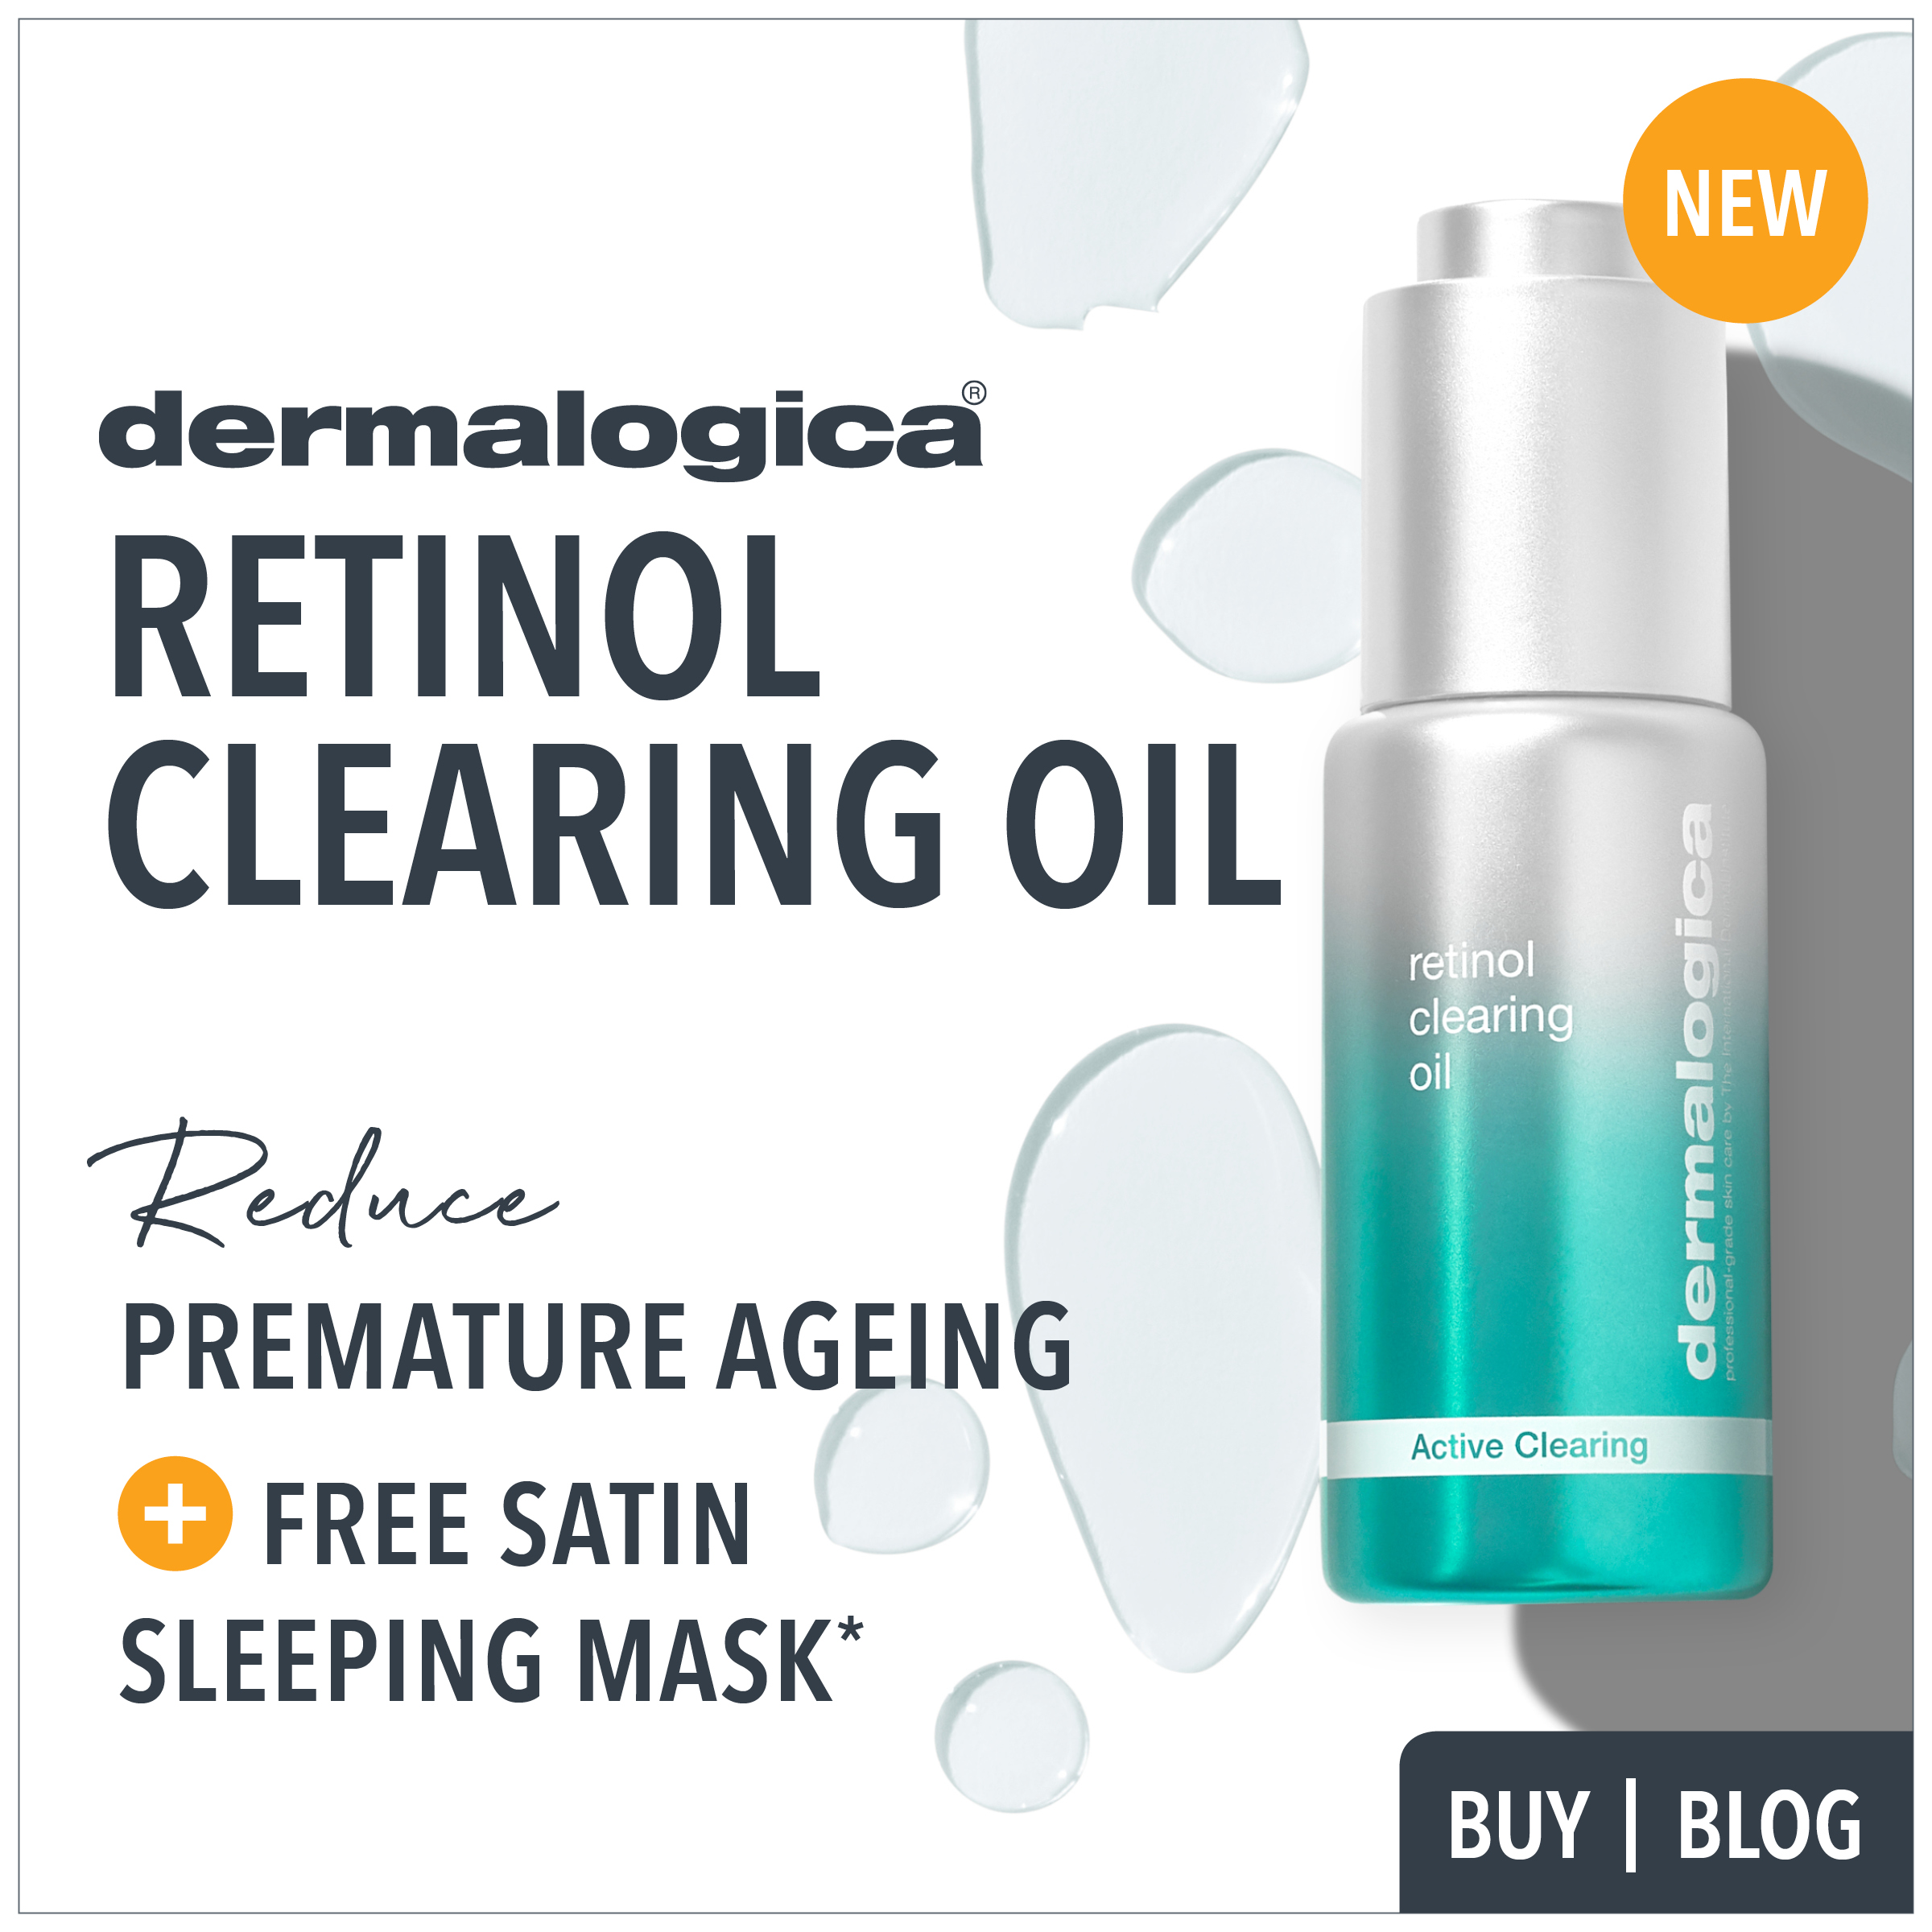 new dermalogica retinol clearing oil from prodermal